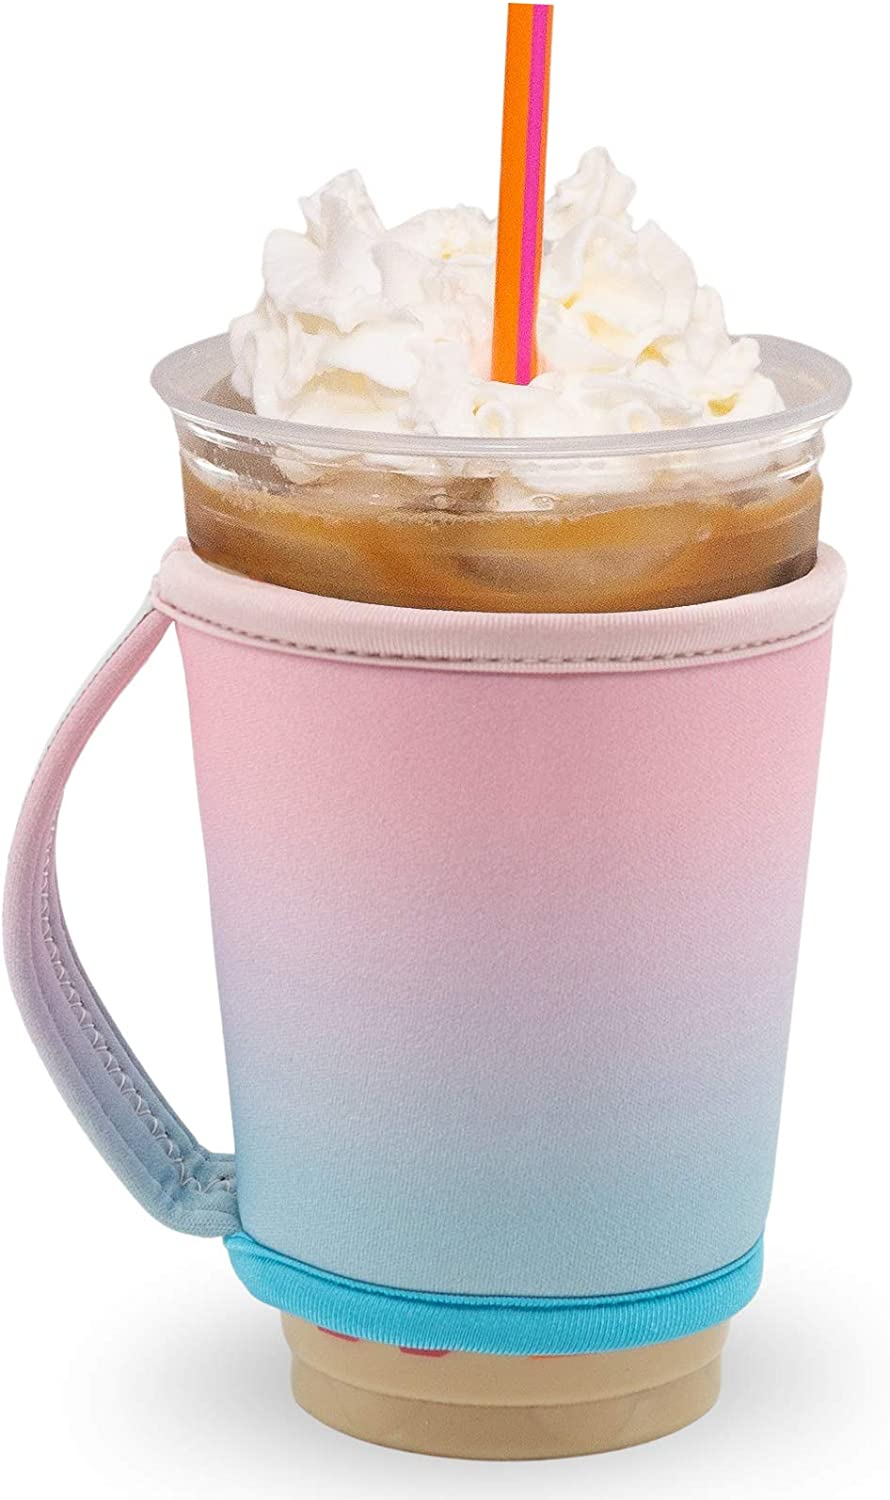 GoCuff Reusable Hot and Iced Coffee Cup Insulator Sleeve with Handle for Beverages and Neoprene Holder for Starbucks, McCafe, Dunkin Donuts, More (Medium, Large) (Cotton Candy Ombre)